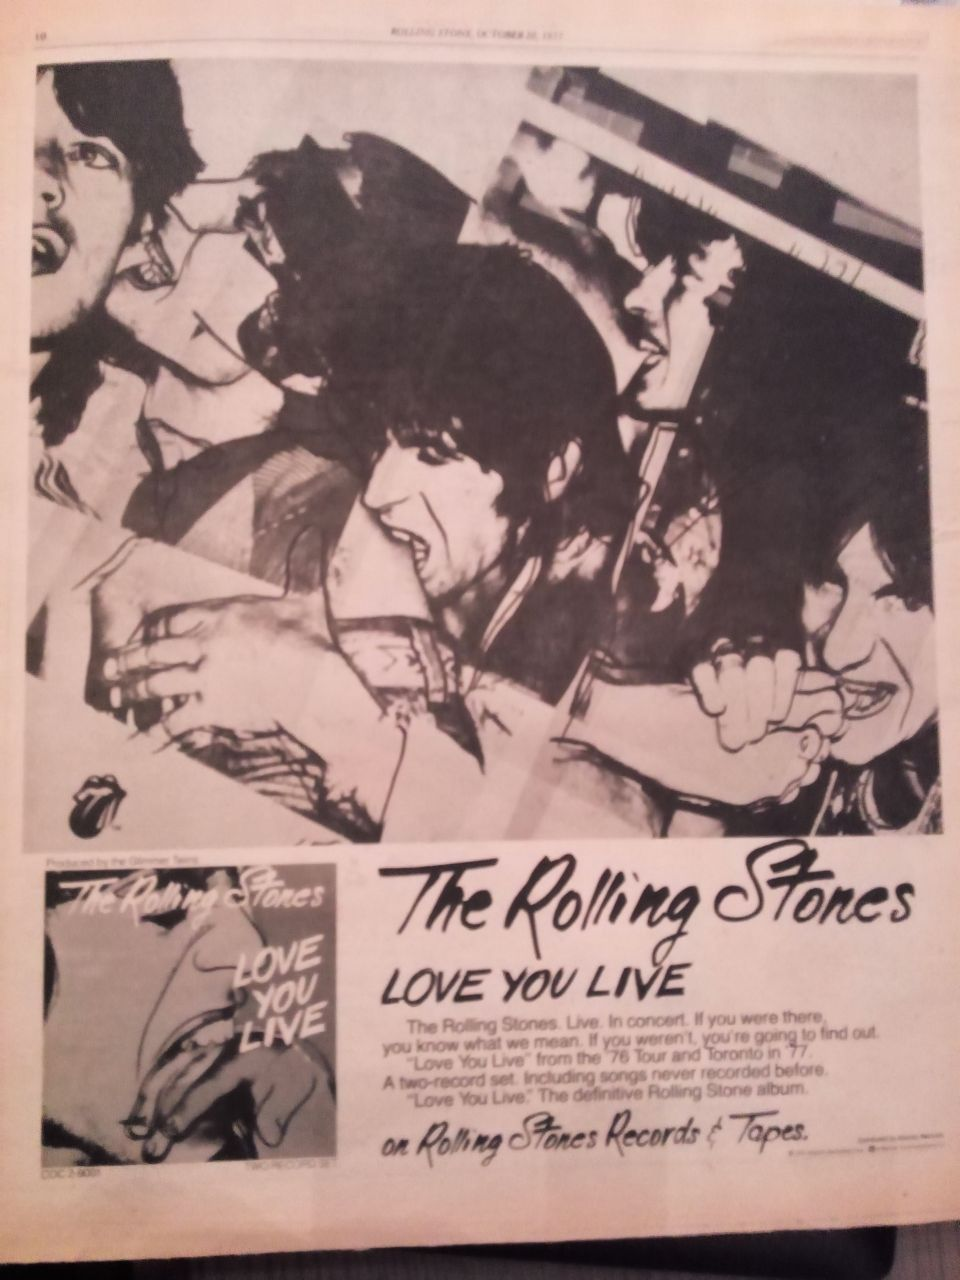 warhol-jagger-love-you-live-proof-4